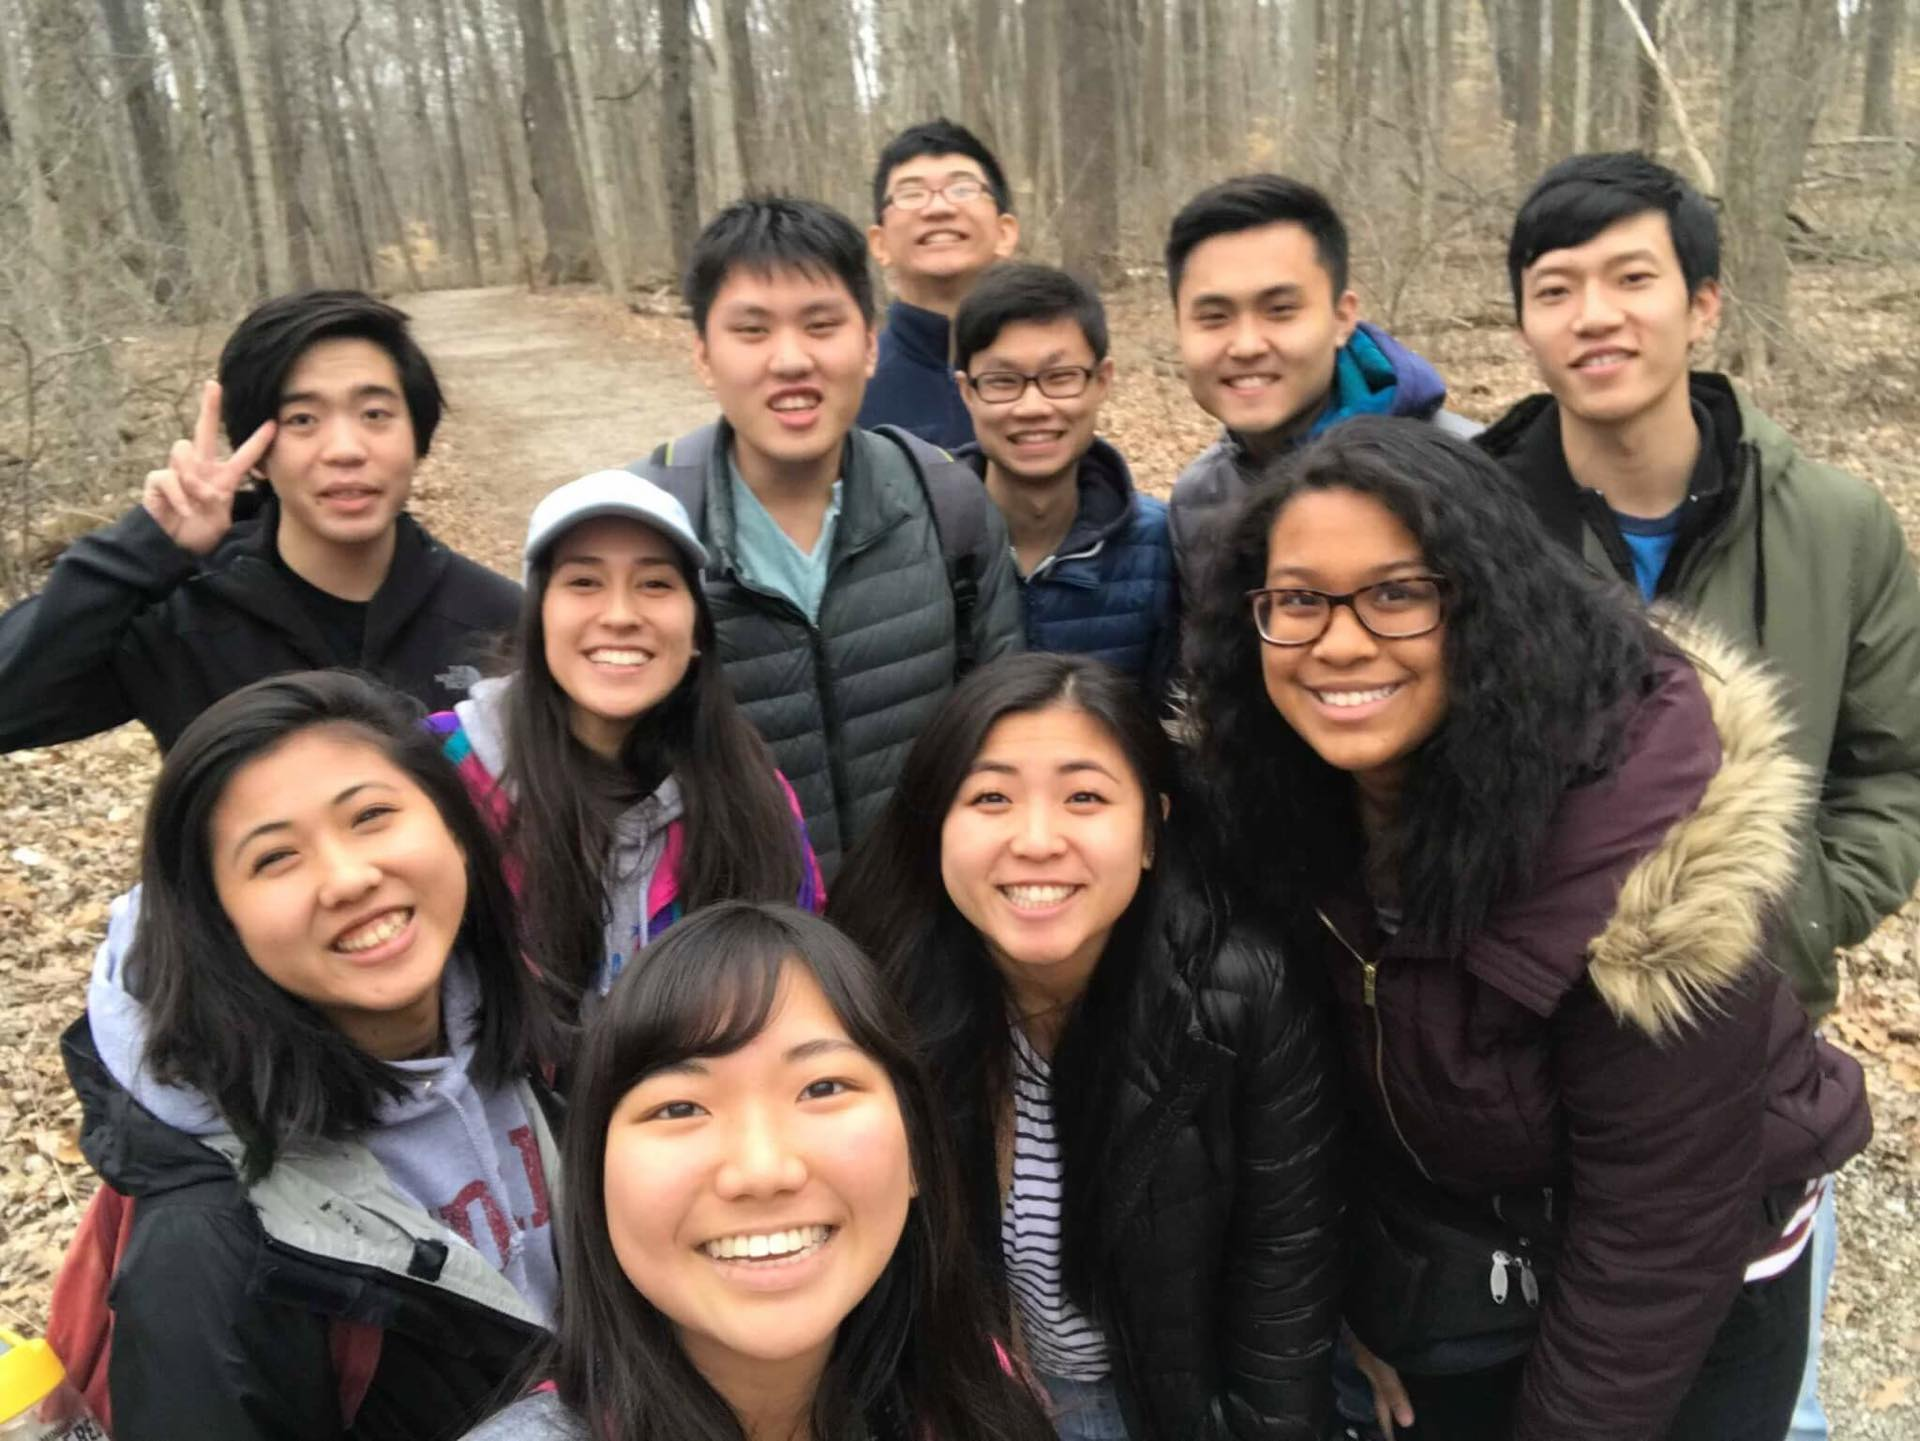 Indianapolis, IN - Indiana Young Adult Ministry strives to build a community of support and growth for young adults building a life of faith. We hold biweekly Divine Principle studies and enjoy going on adventures through our quarterly retreats.Main Contact: Yoshika Iwamoto